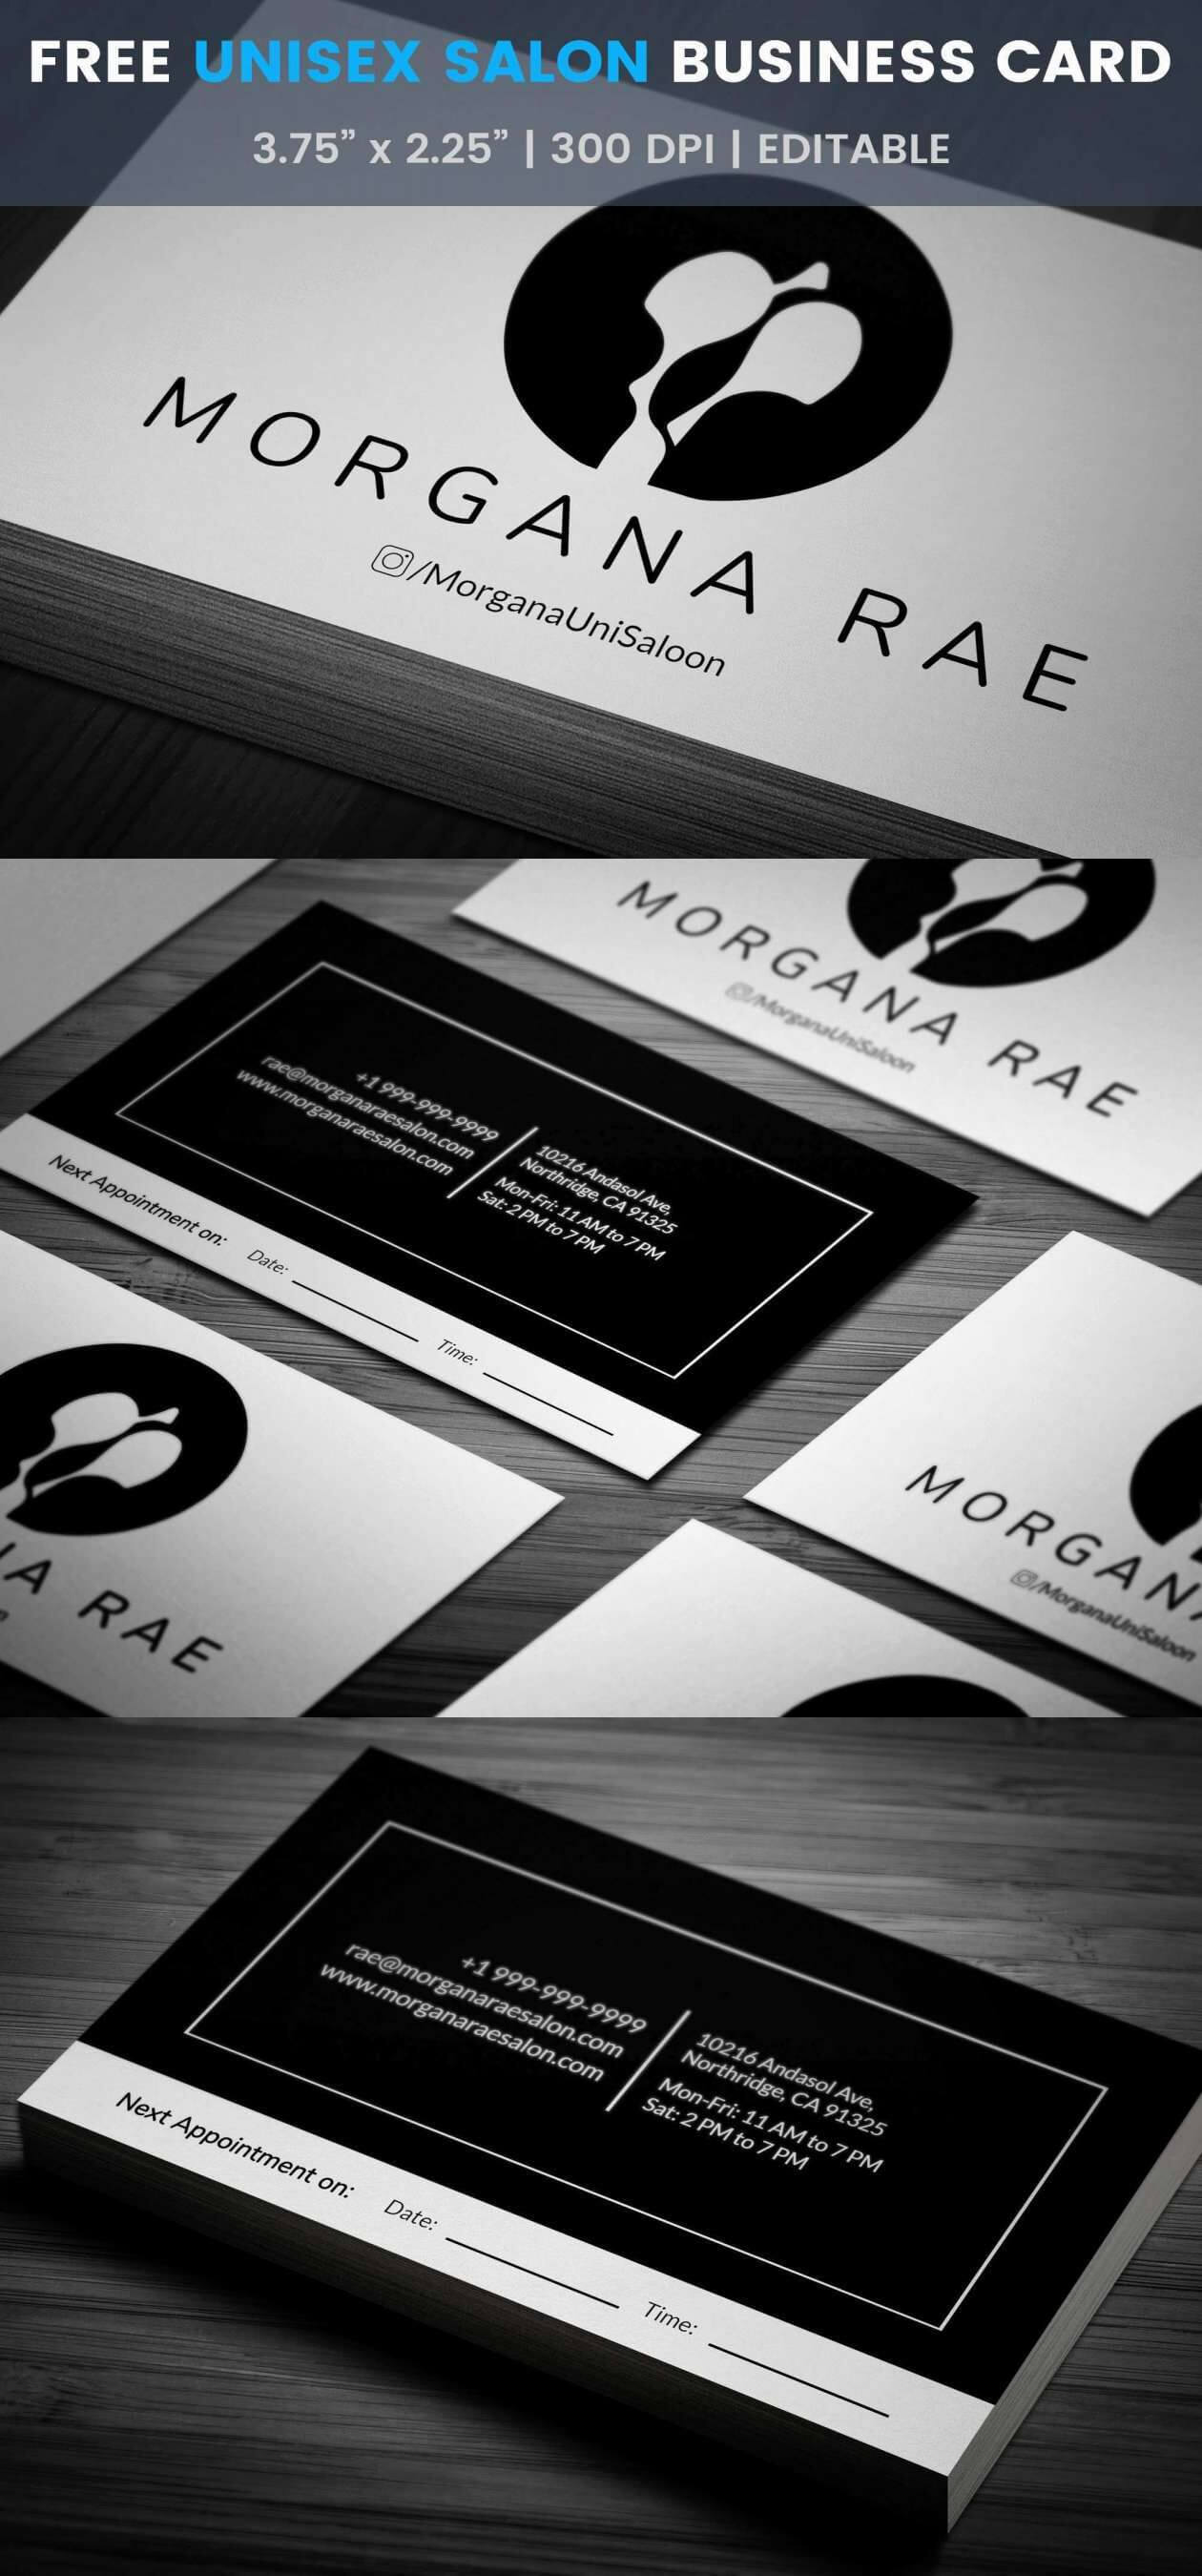 Massage Therapy Business Card Templates Free Template Pdf inside Massage Therapy Business Card Templates